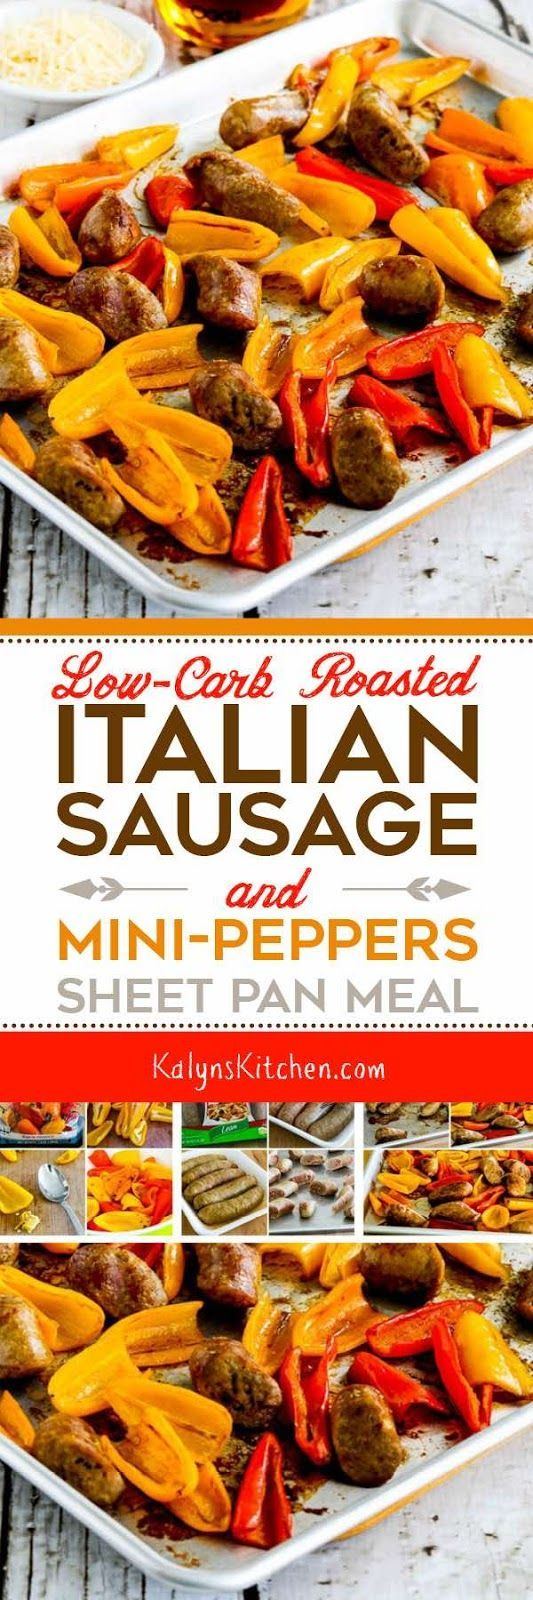 Low-Carb Roasted Italian Sausage and Sweet Mini Peppers Sheet Pan Meal